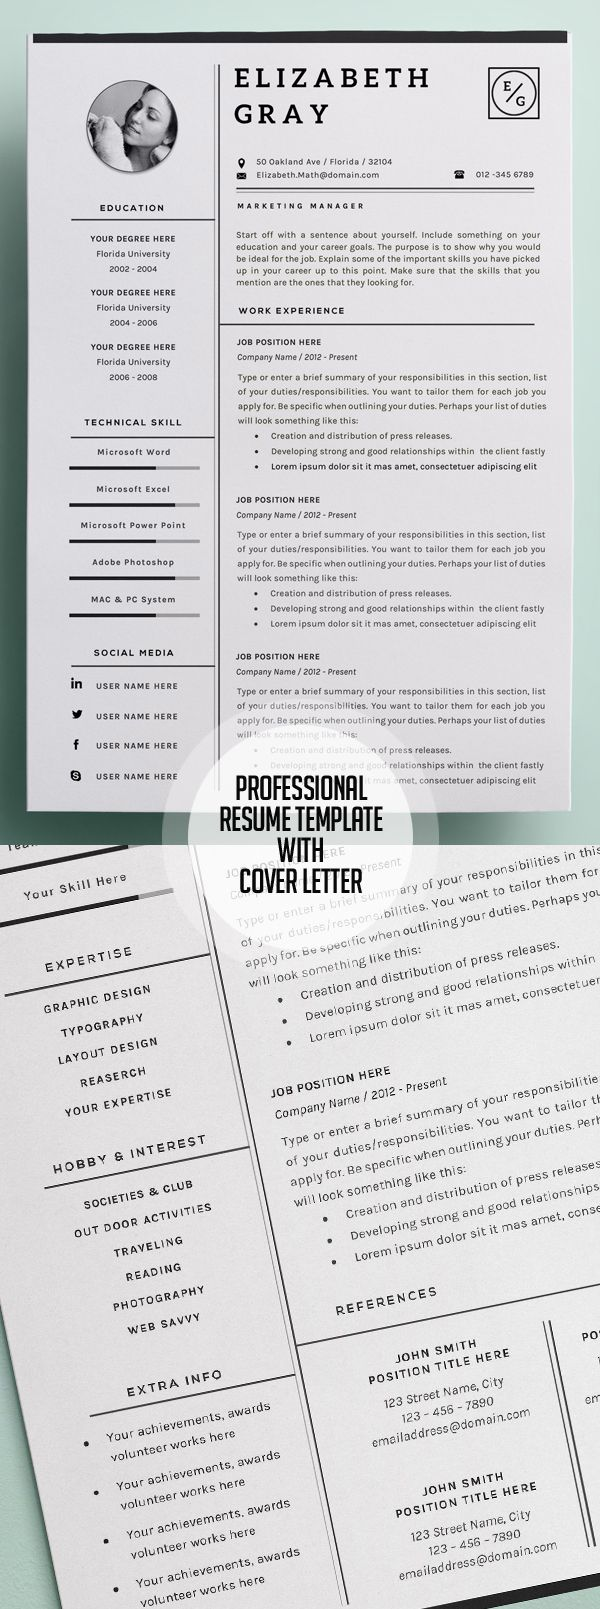 Picnictoimpeachus  Scenic  Resume Ideas On Pinterest  Resume Resume Templates And  With Fair Professional And Modern Resume Template With Page Cover Cvtemplate With Nice Resume Objective Samples Also Accounting Resume In Addition Resume Objective Example And Resume Templates Free Download As Well As Project Manager Resume Additionally Resume Vs Cv From Pinterestcom With Picnictoimpeachus  Fair  Resume Ideas On Pinterest  Resume Resume Templates And  With Nice Professional And Modern Resume Template With Page Cover Cvtemplate And Scenic Resume Objective Samples Also Accounting Resume In Addition Resume Objective Example From Pinterestcom